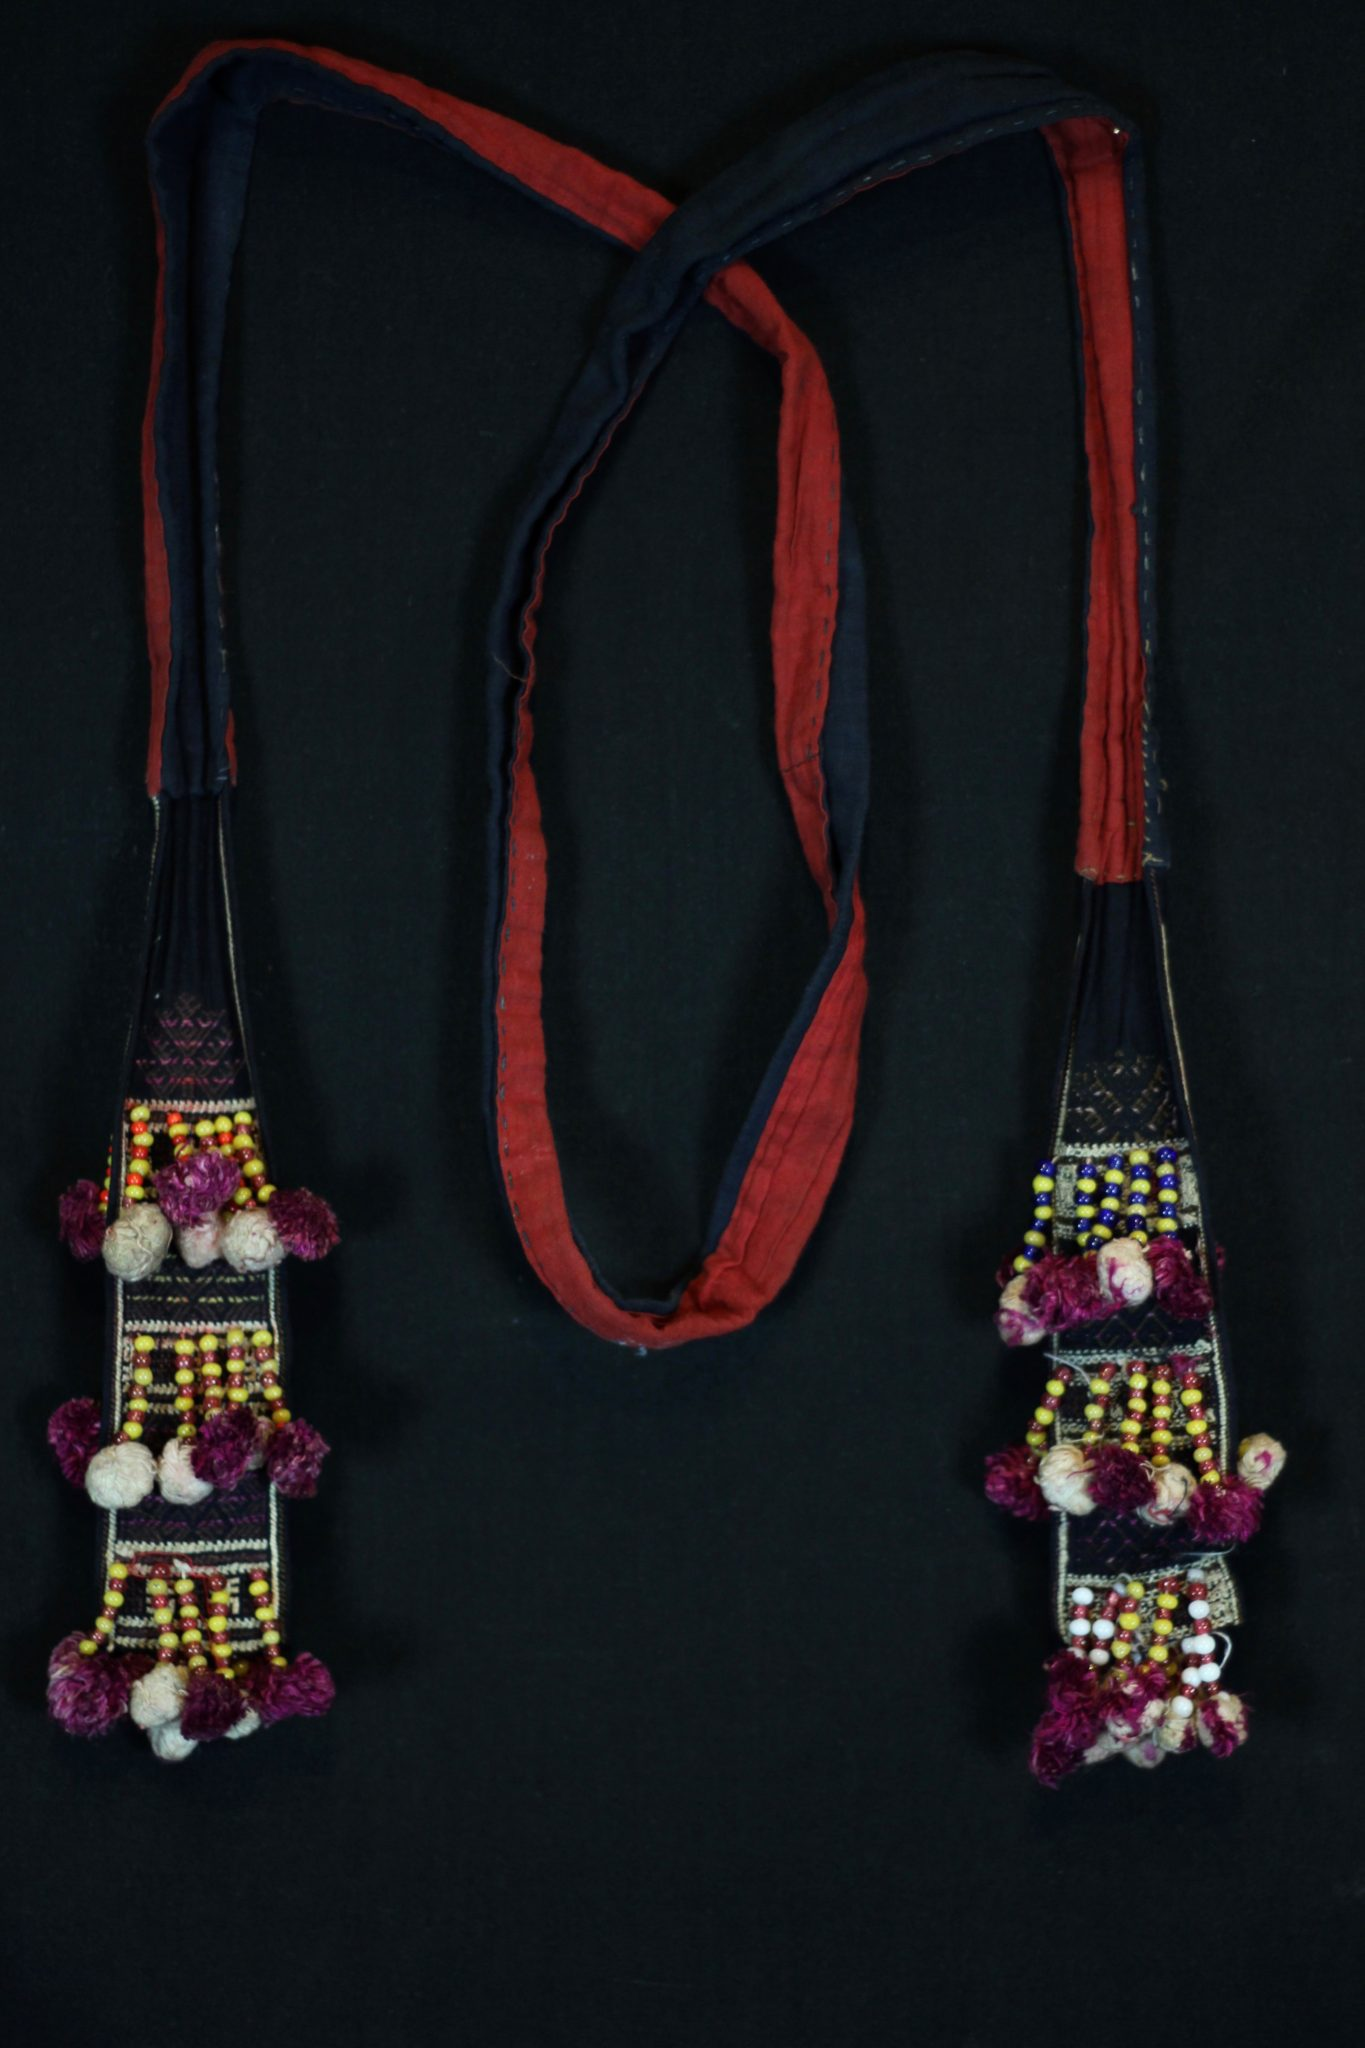 "Shaman Costume Belt, Vietnam, Mid 20th c, Cotton, embroidered with silk, glass beads, Part of shaman's costume. 69 ½"" x 3"" x 1"", $180"